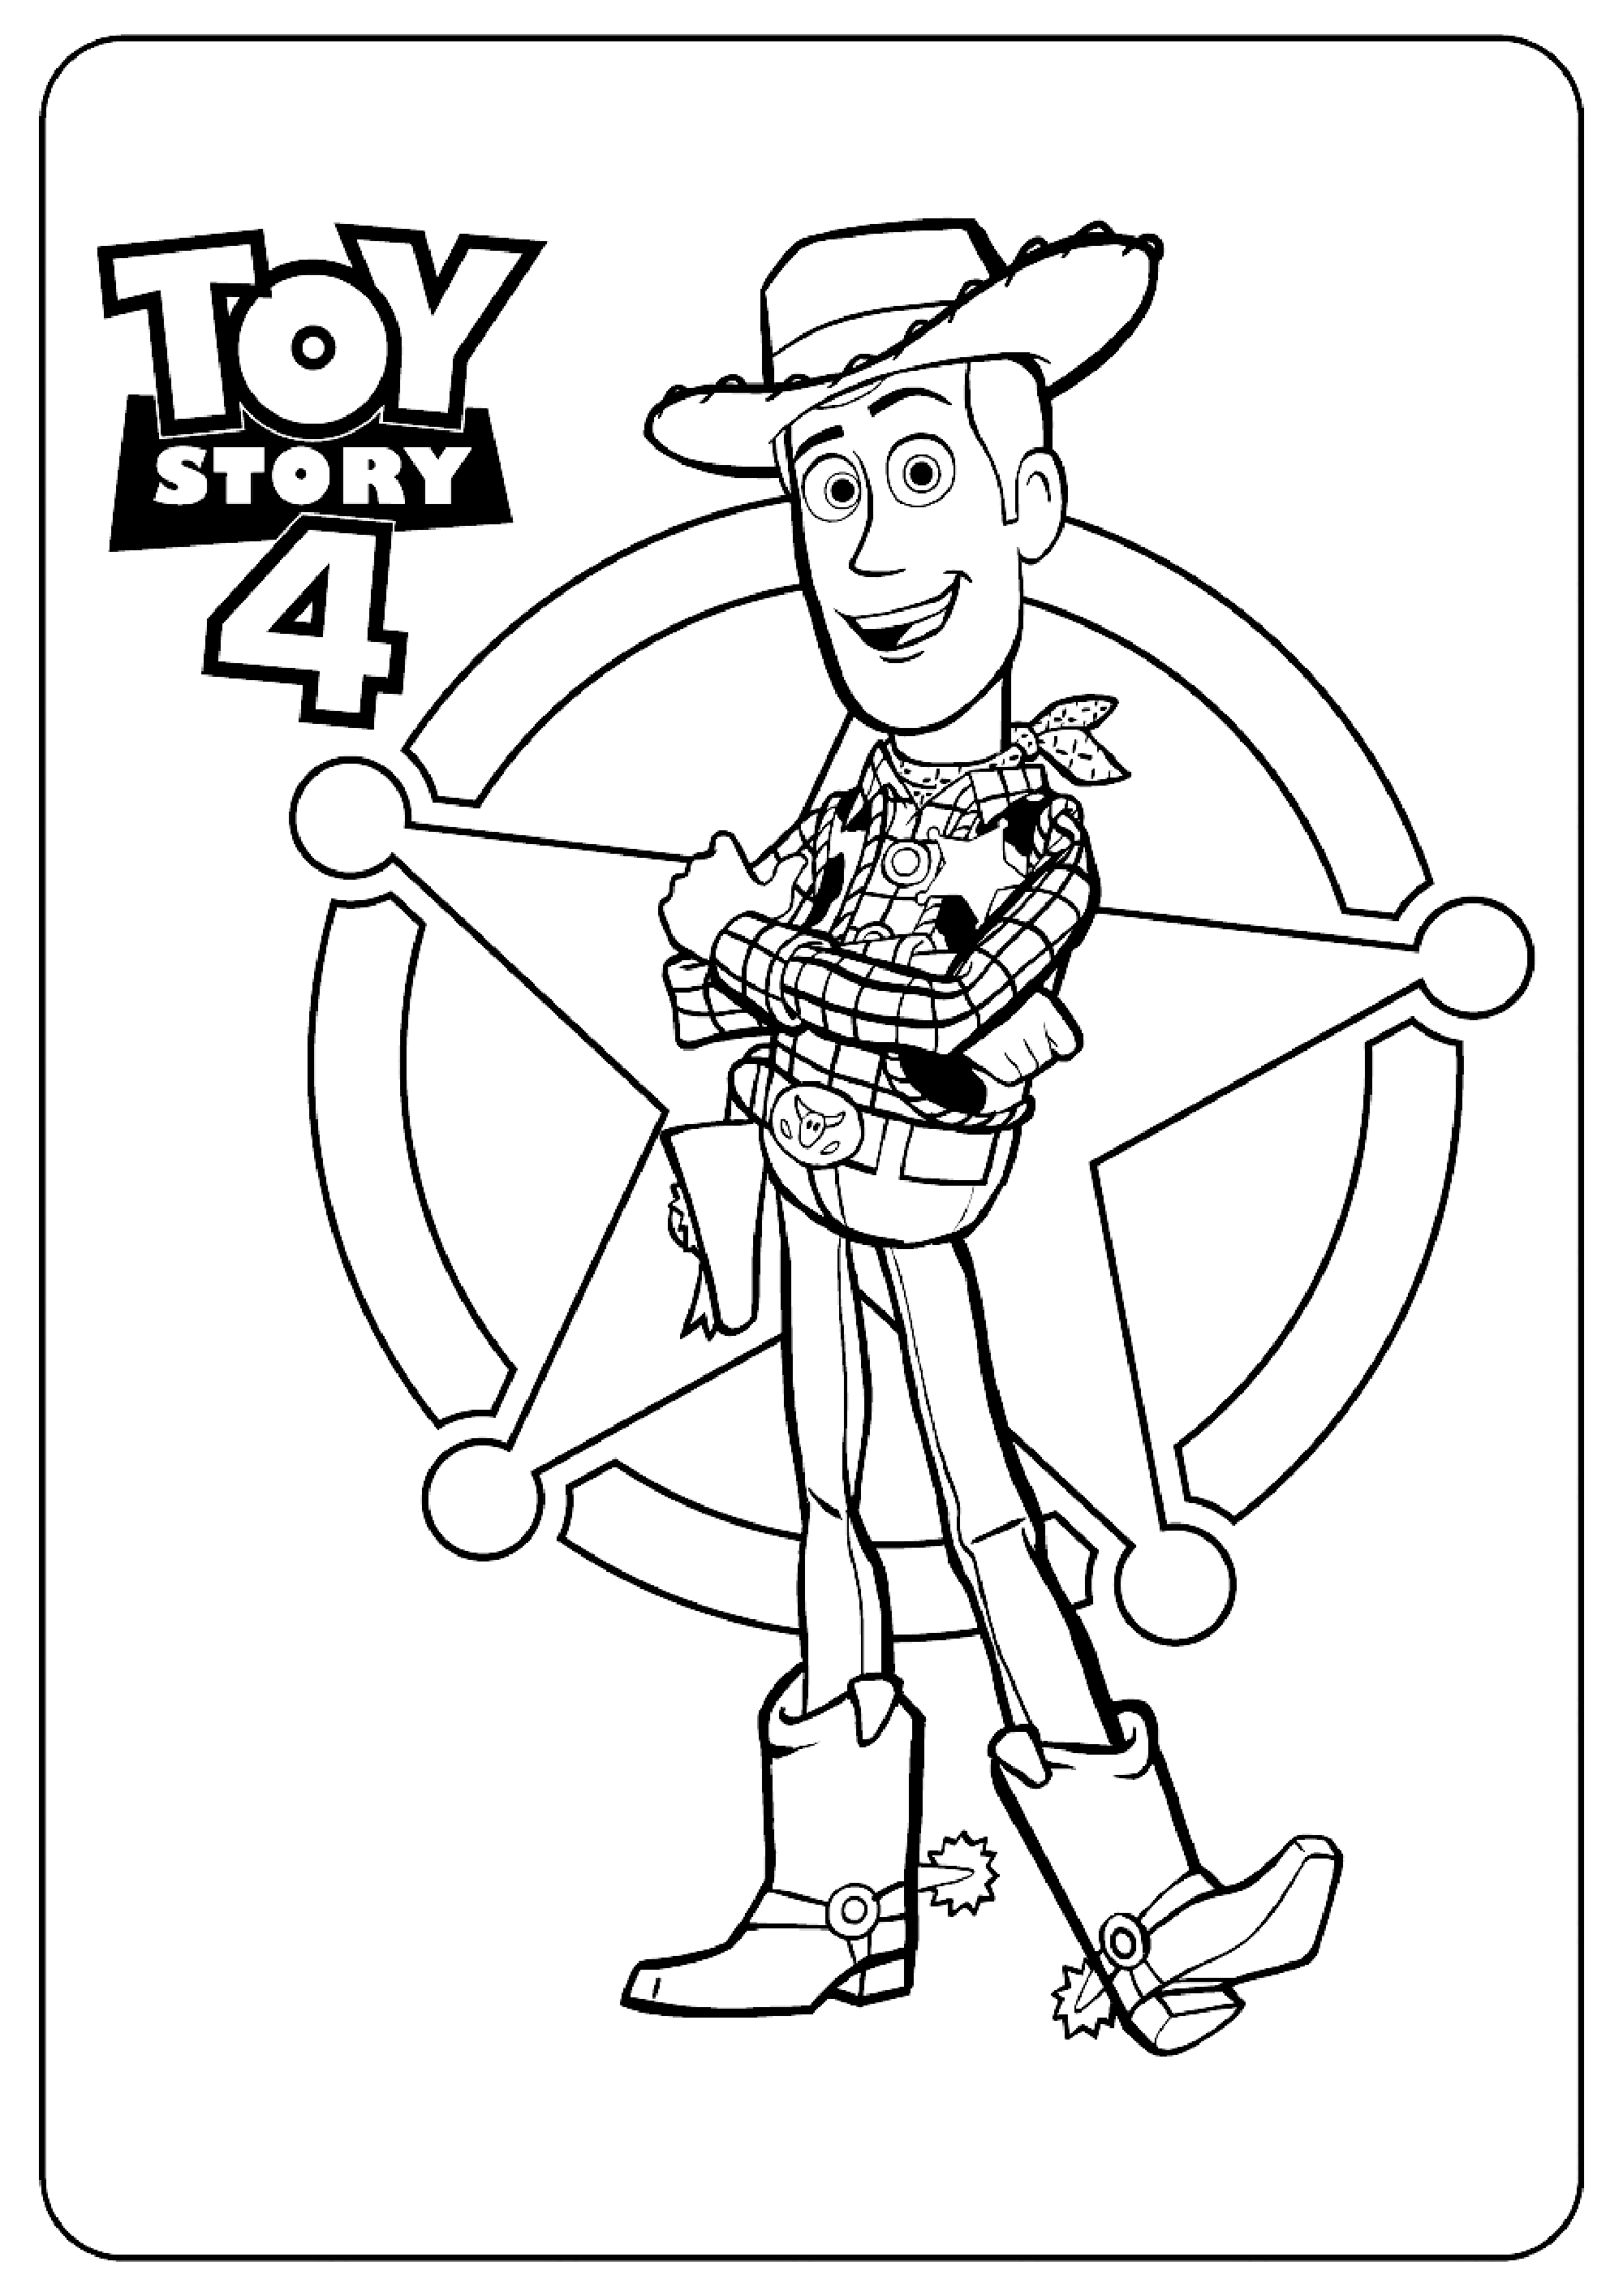 Sheriff Woody Toy Story 4 Coloring Page